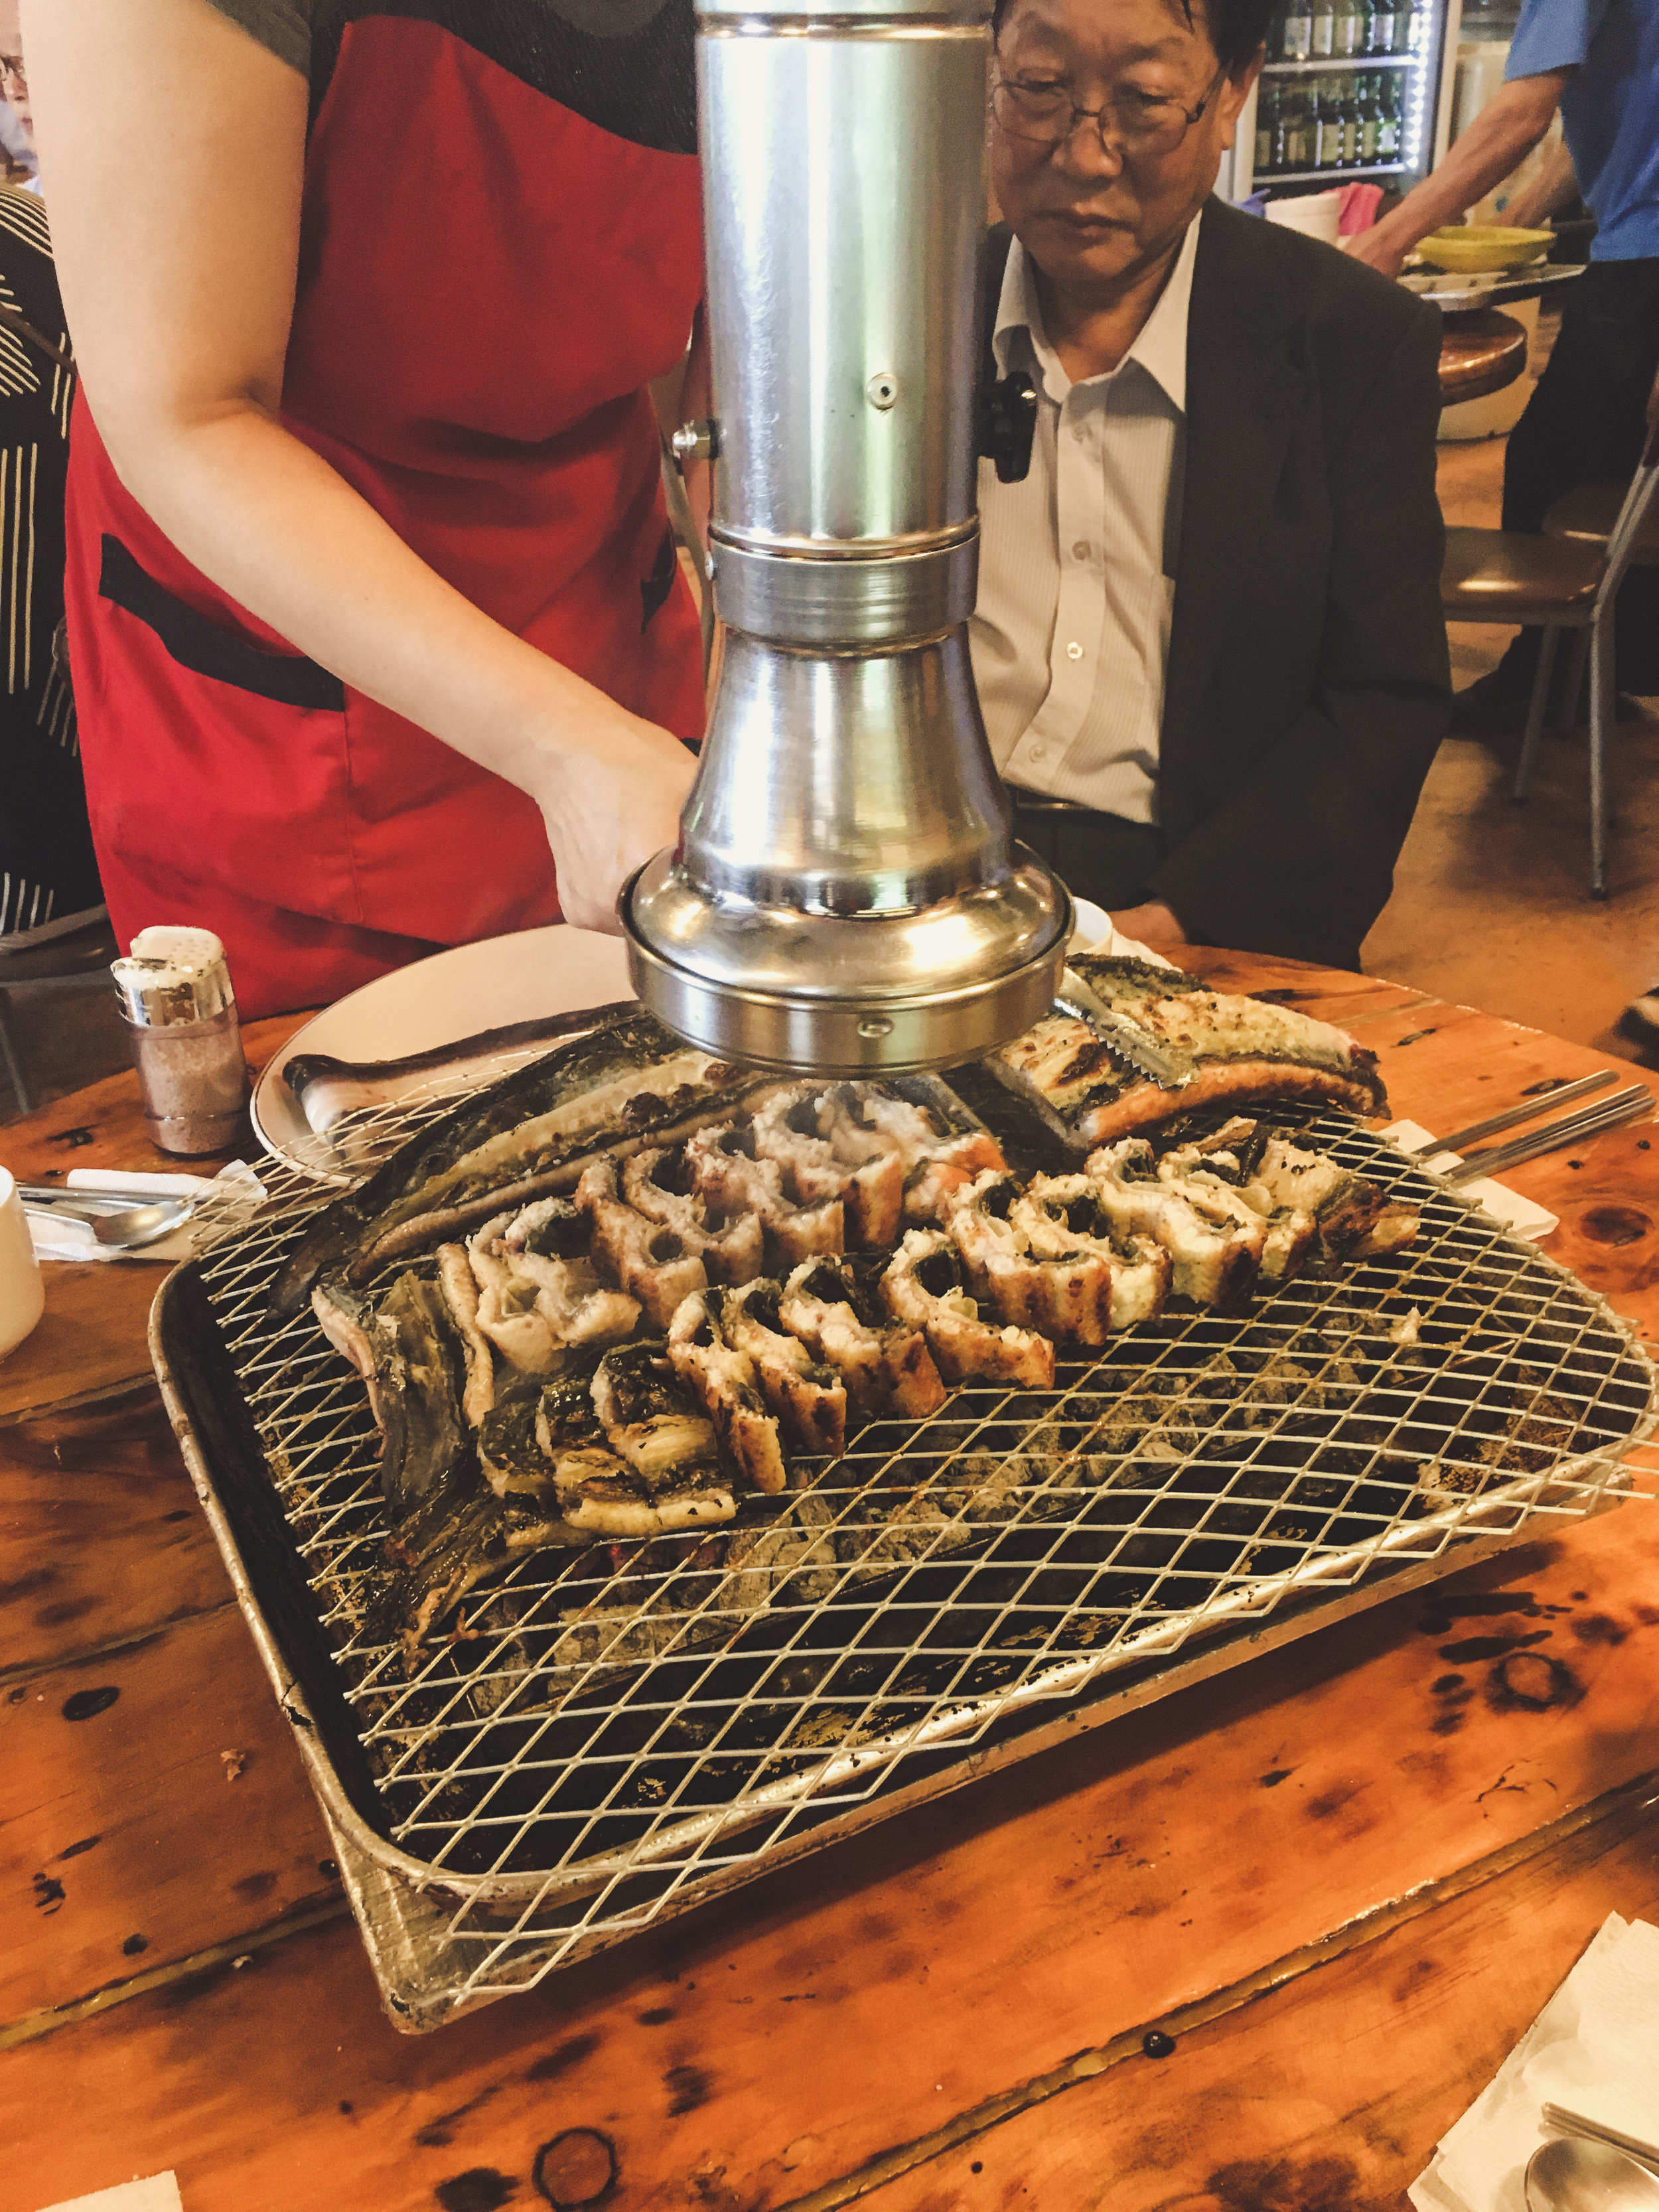 Freshwater Eel grilled in the middle of the table. Incredibly fresh, and oh so delicious.